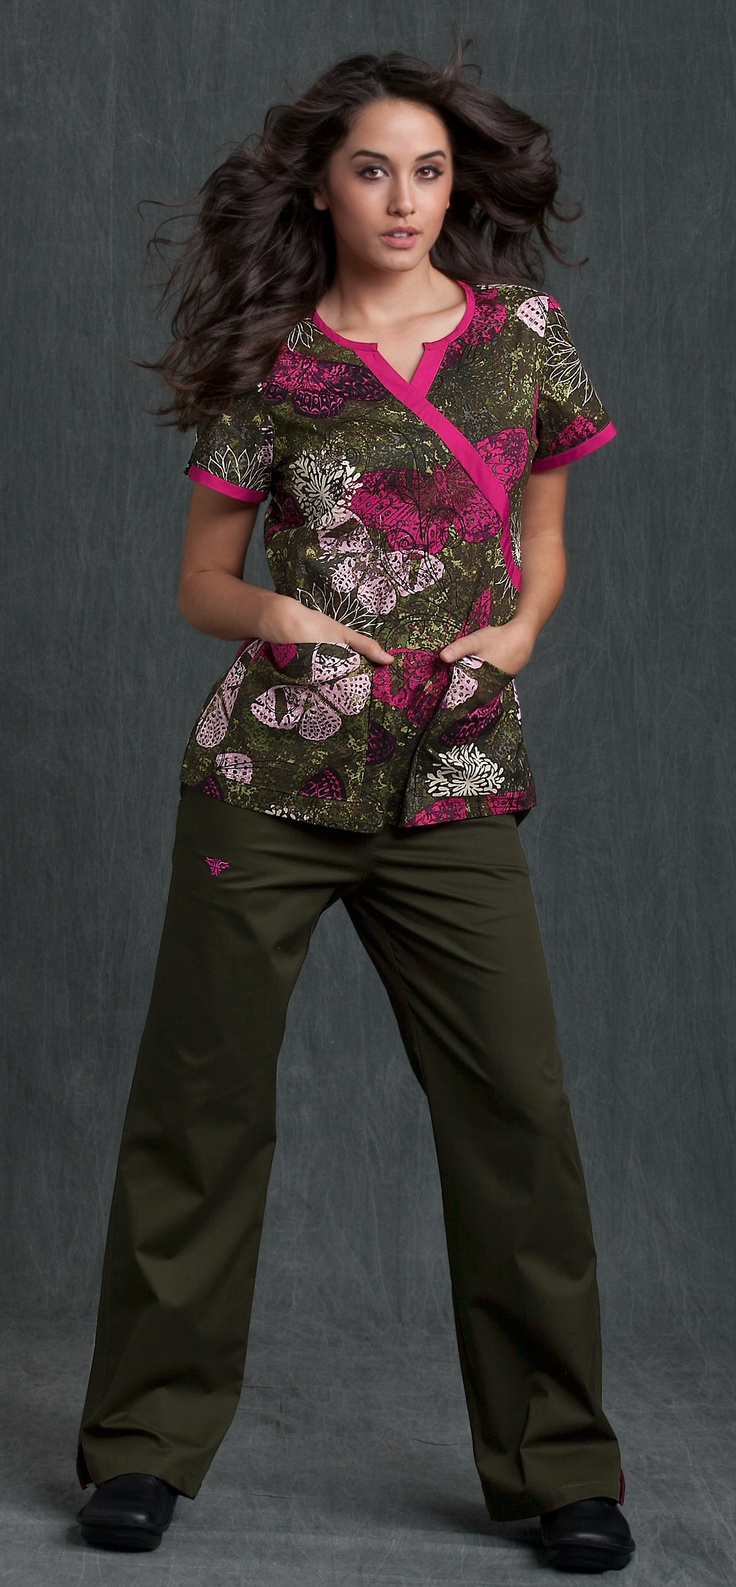 Uh, love these scrubs, and if I could look that fabulous on shift in them that'd be great too.